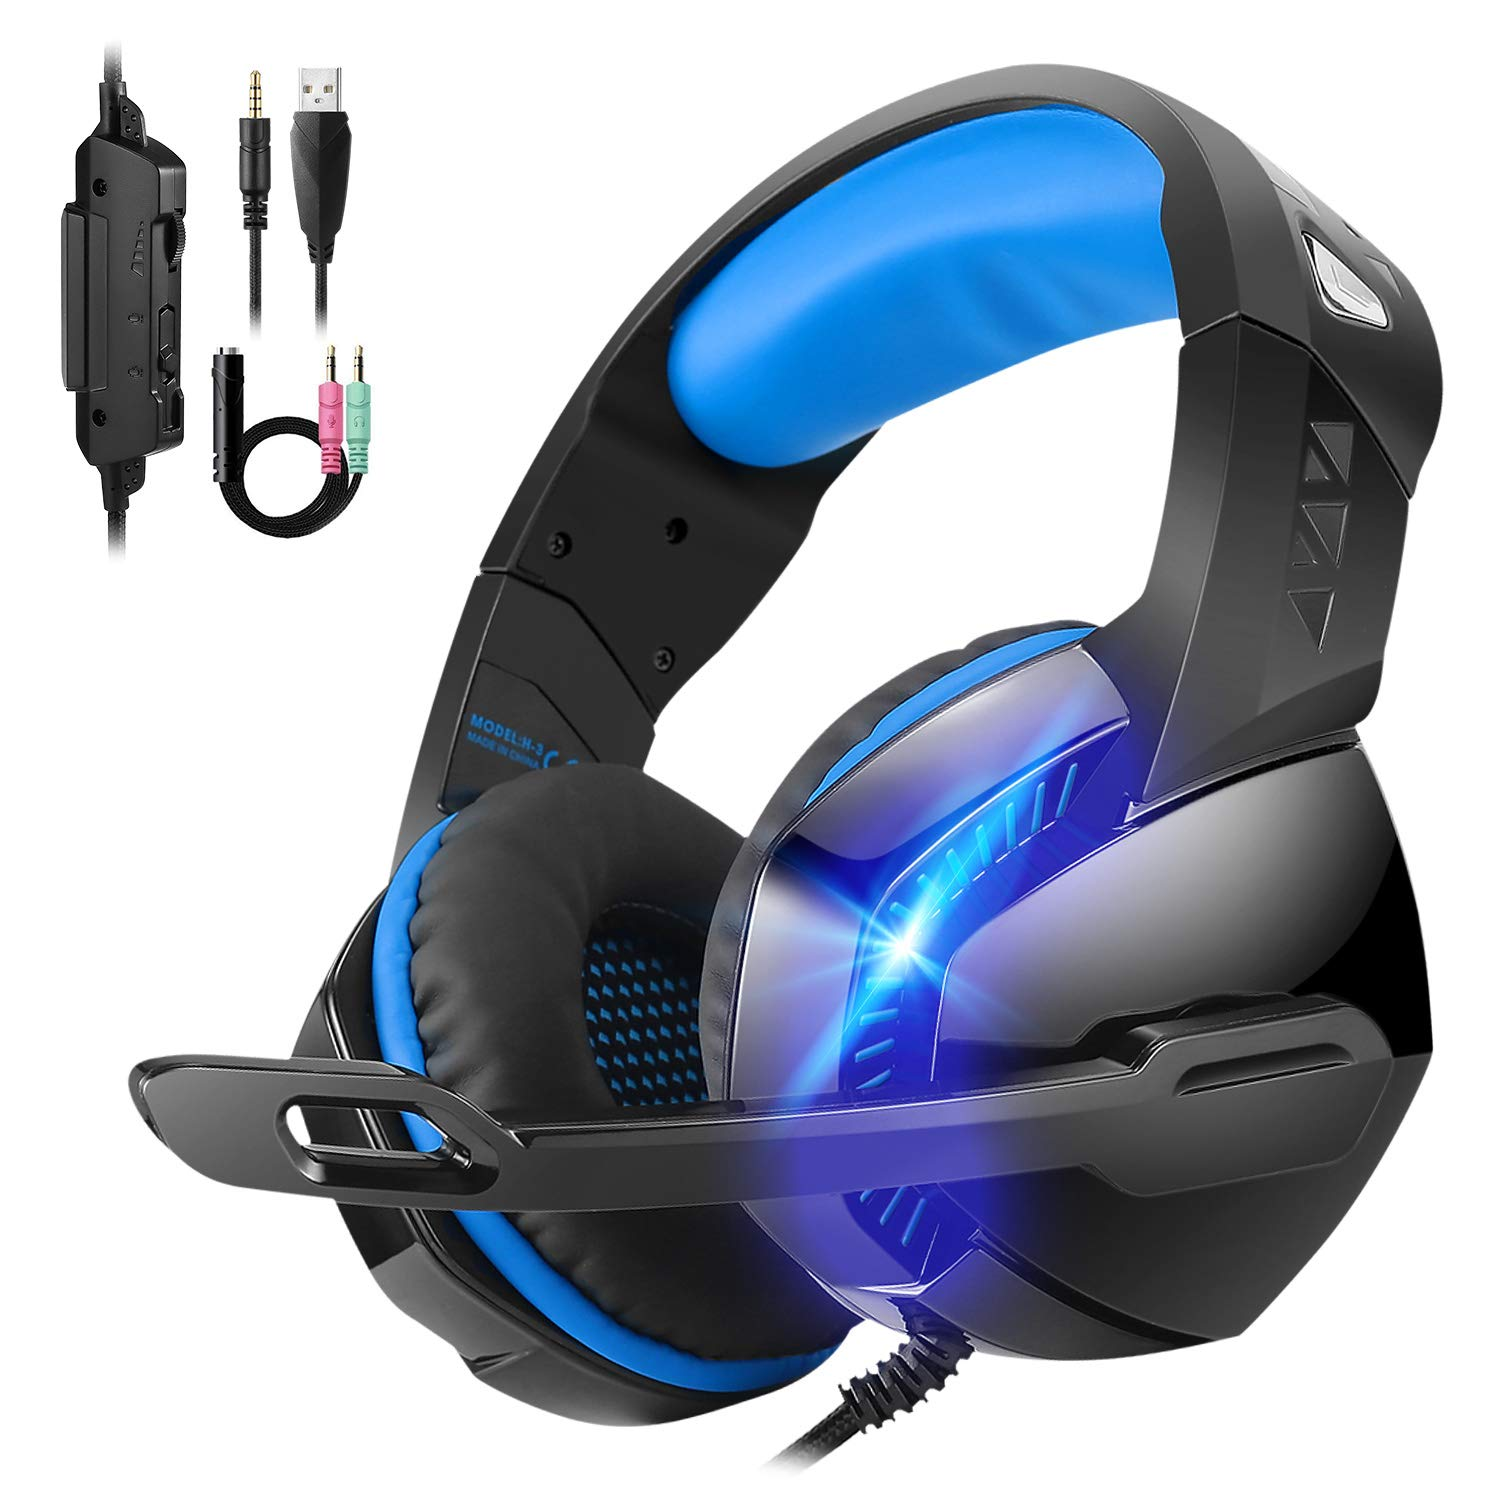 Stereo 7.1 Surround Sound 3.55mm Gaming Headset,for PS4 Xbox One PC Controller Nintendo Switch Games,PHOINIKAS H3 Noise Cancelling Headphones,Over Ear Headphones with Mic LED Light Blue